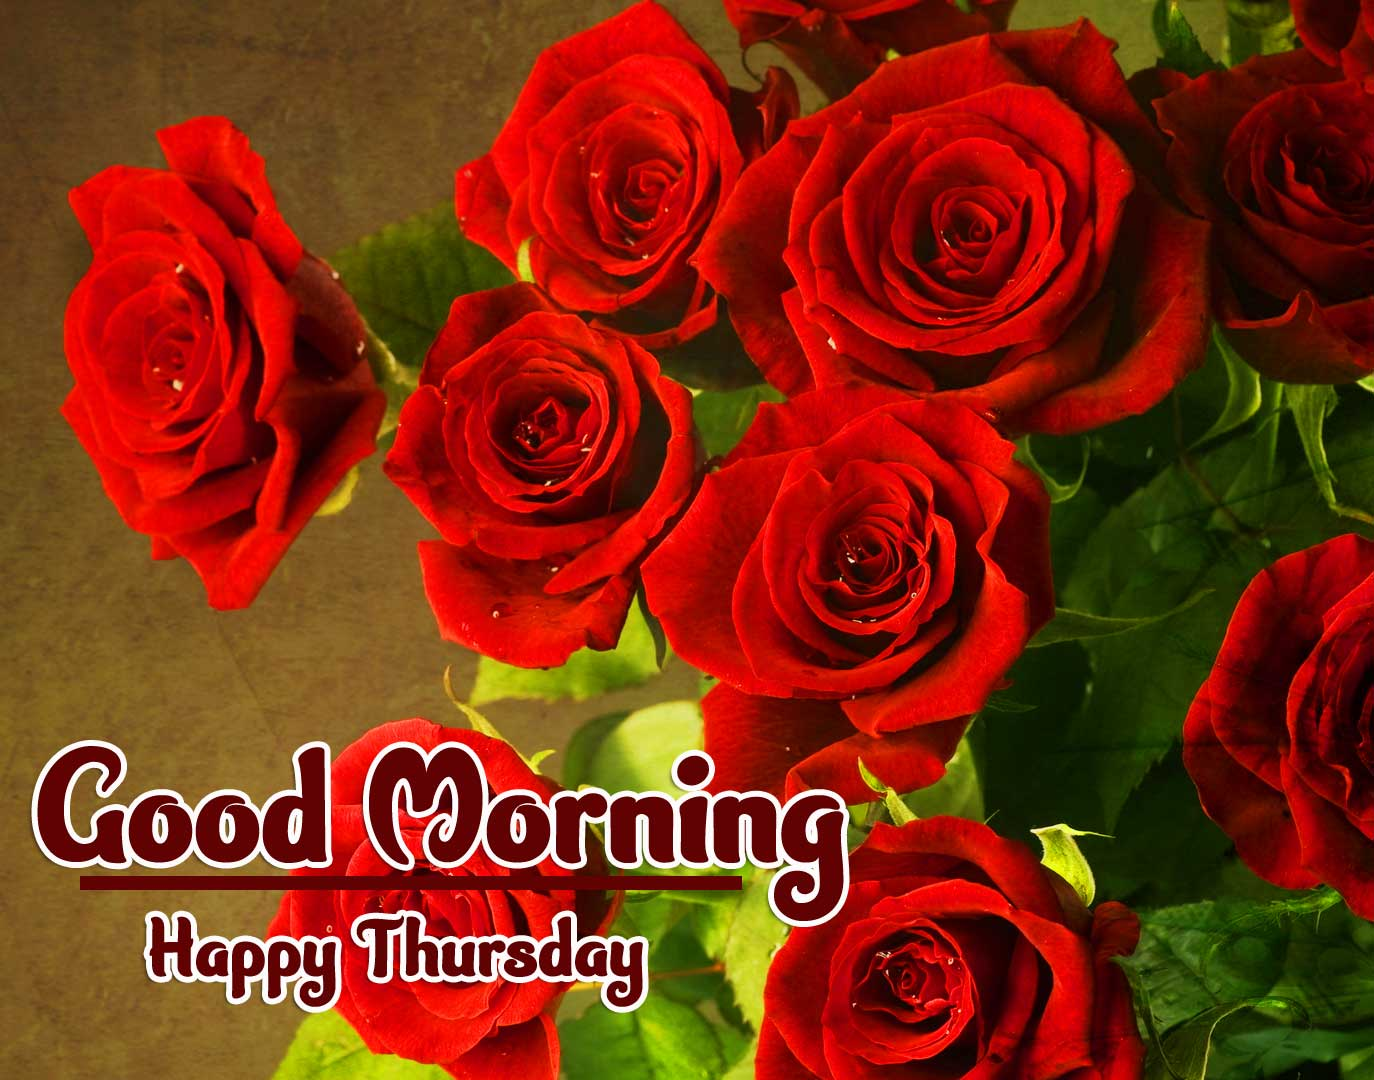 Beautiful Thursday Good Morning Images Pics Download With Red Rose